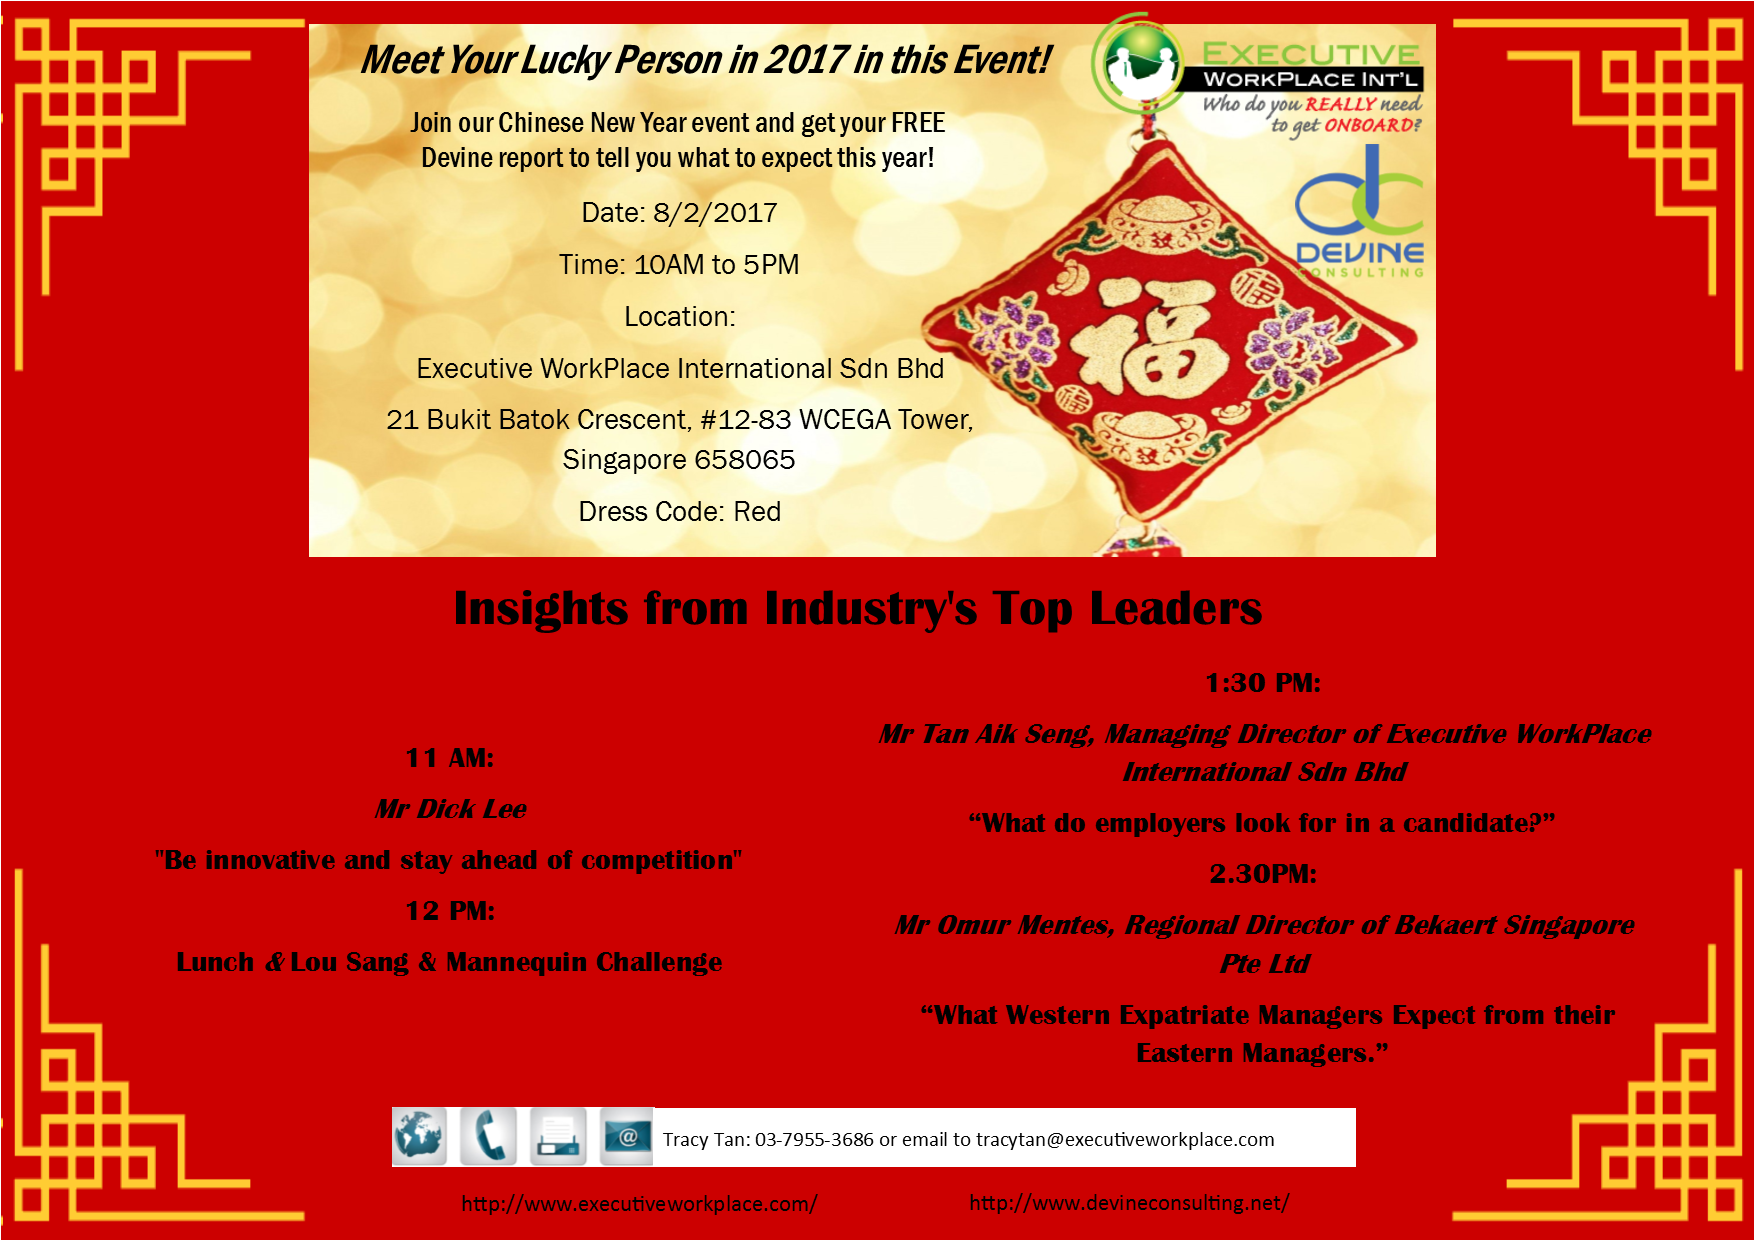 CNY E-Invitation & Event Itinerary (SG)